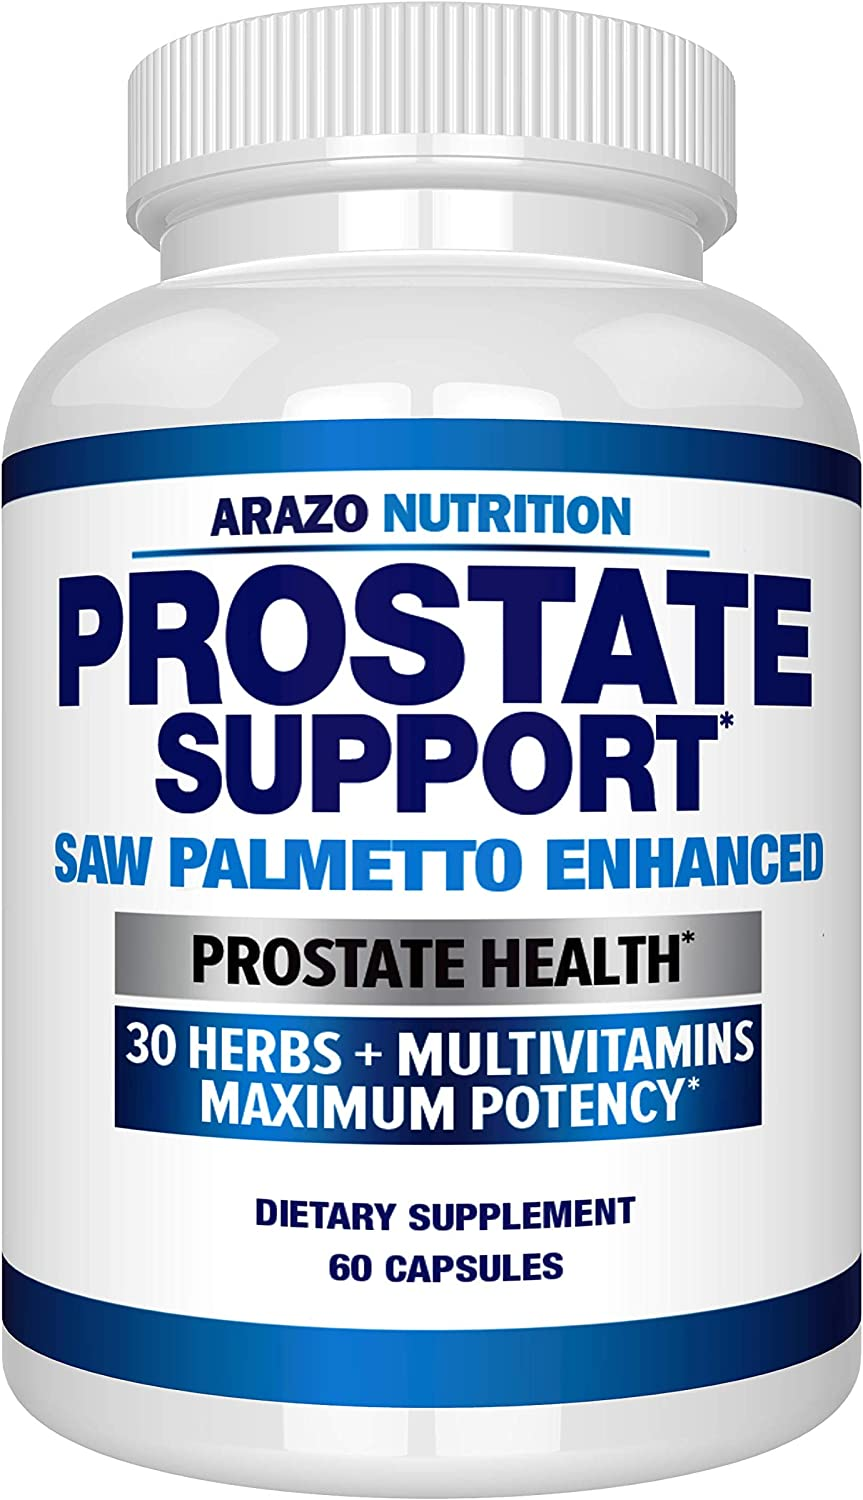 Prostate Supplement - Saw Palmetto + 30 Herbs - Reduce Frequent Urination, Remedy Hair Loss, Stamina – Single Homeopathic Herbal Extract Health Supplements - Capsule or Pill - Arazo Nutrition: Health & Personal Care